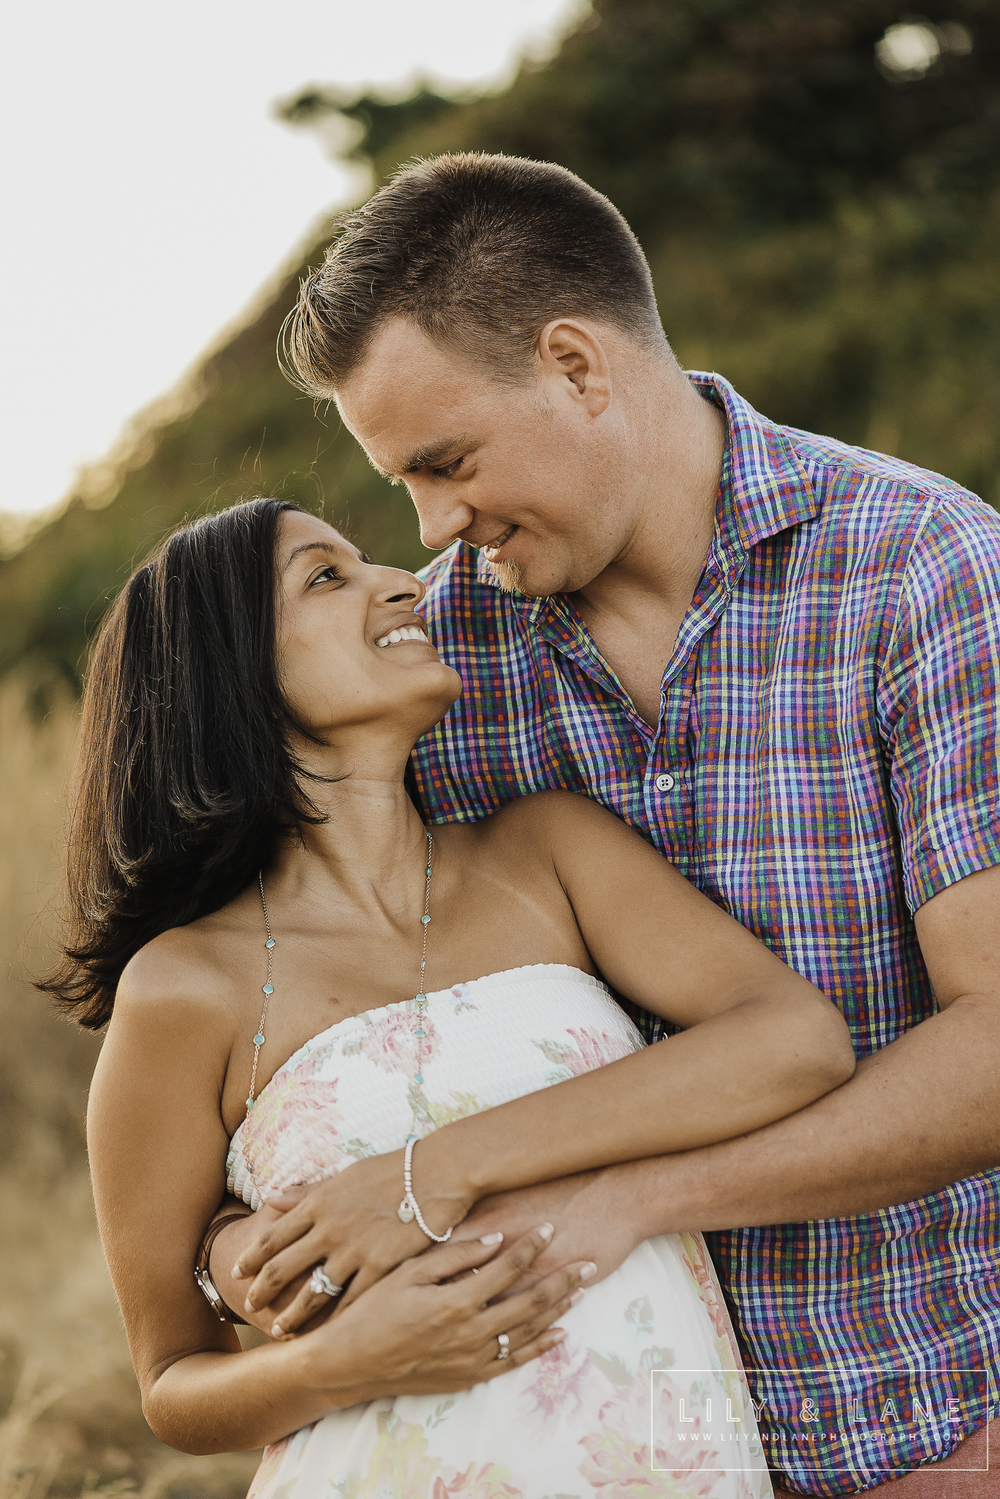 Nicola_Reiersen_Photography_Victoria_BC_Park_Maternity_Session.jpg